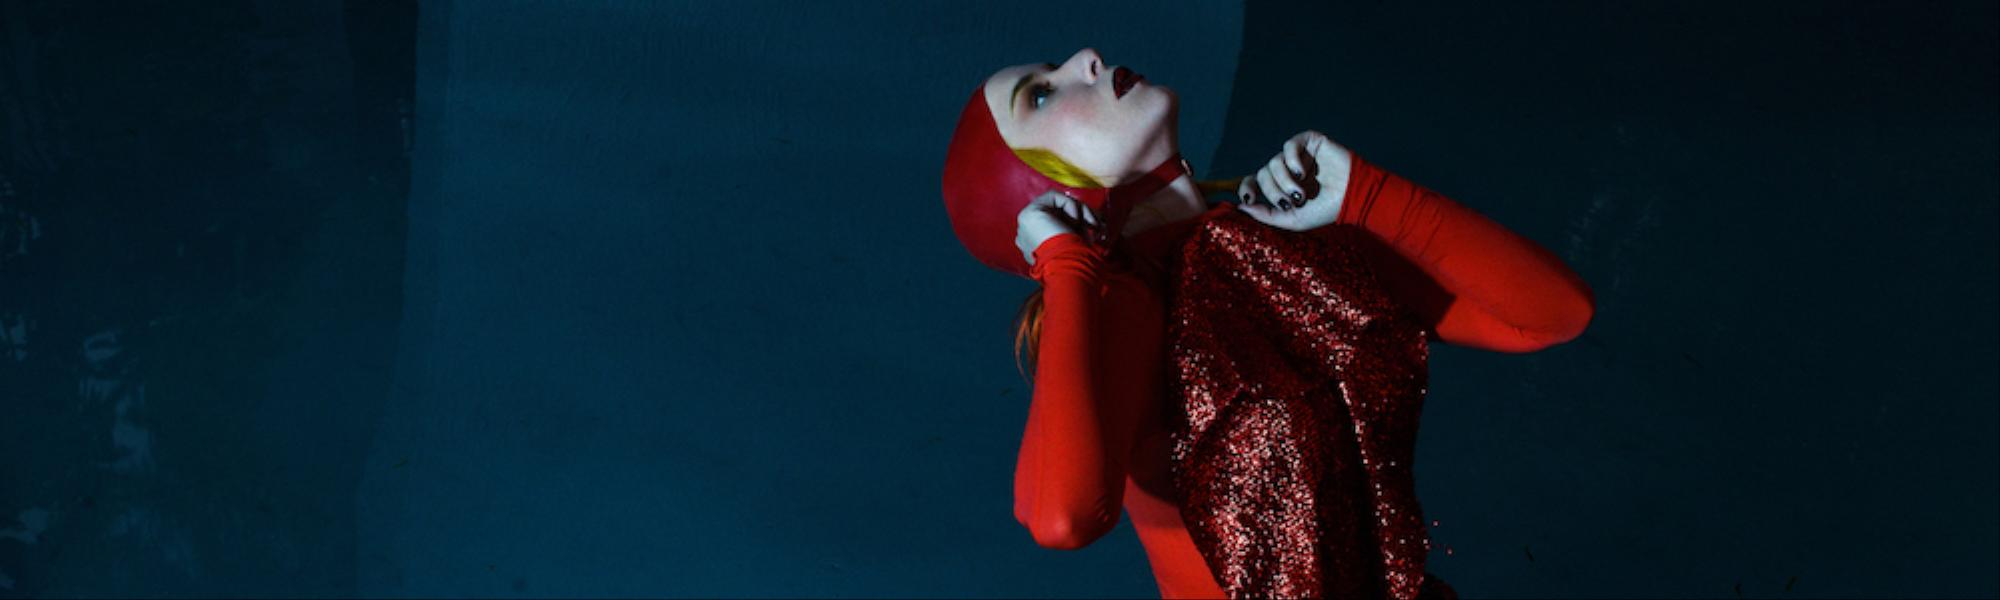 Austra Wants Listeners to Shake Off Apathy and Build a More Utopian World